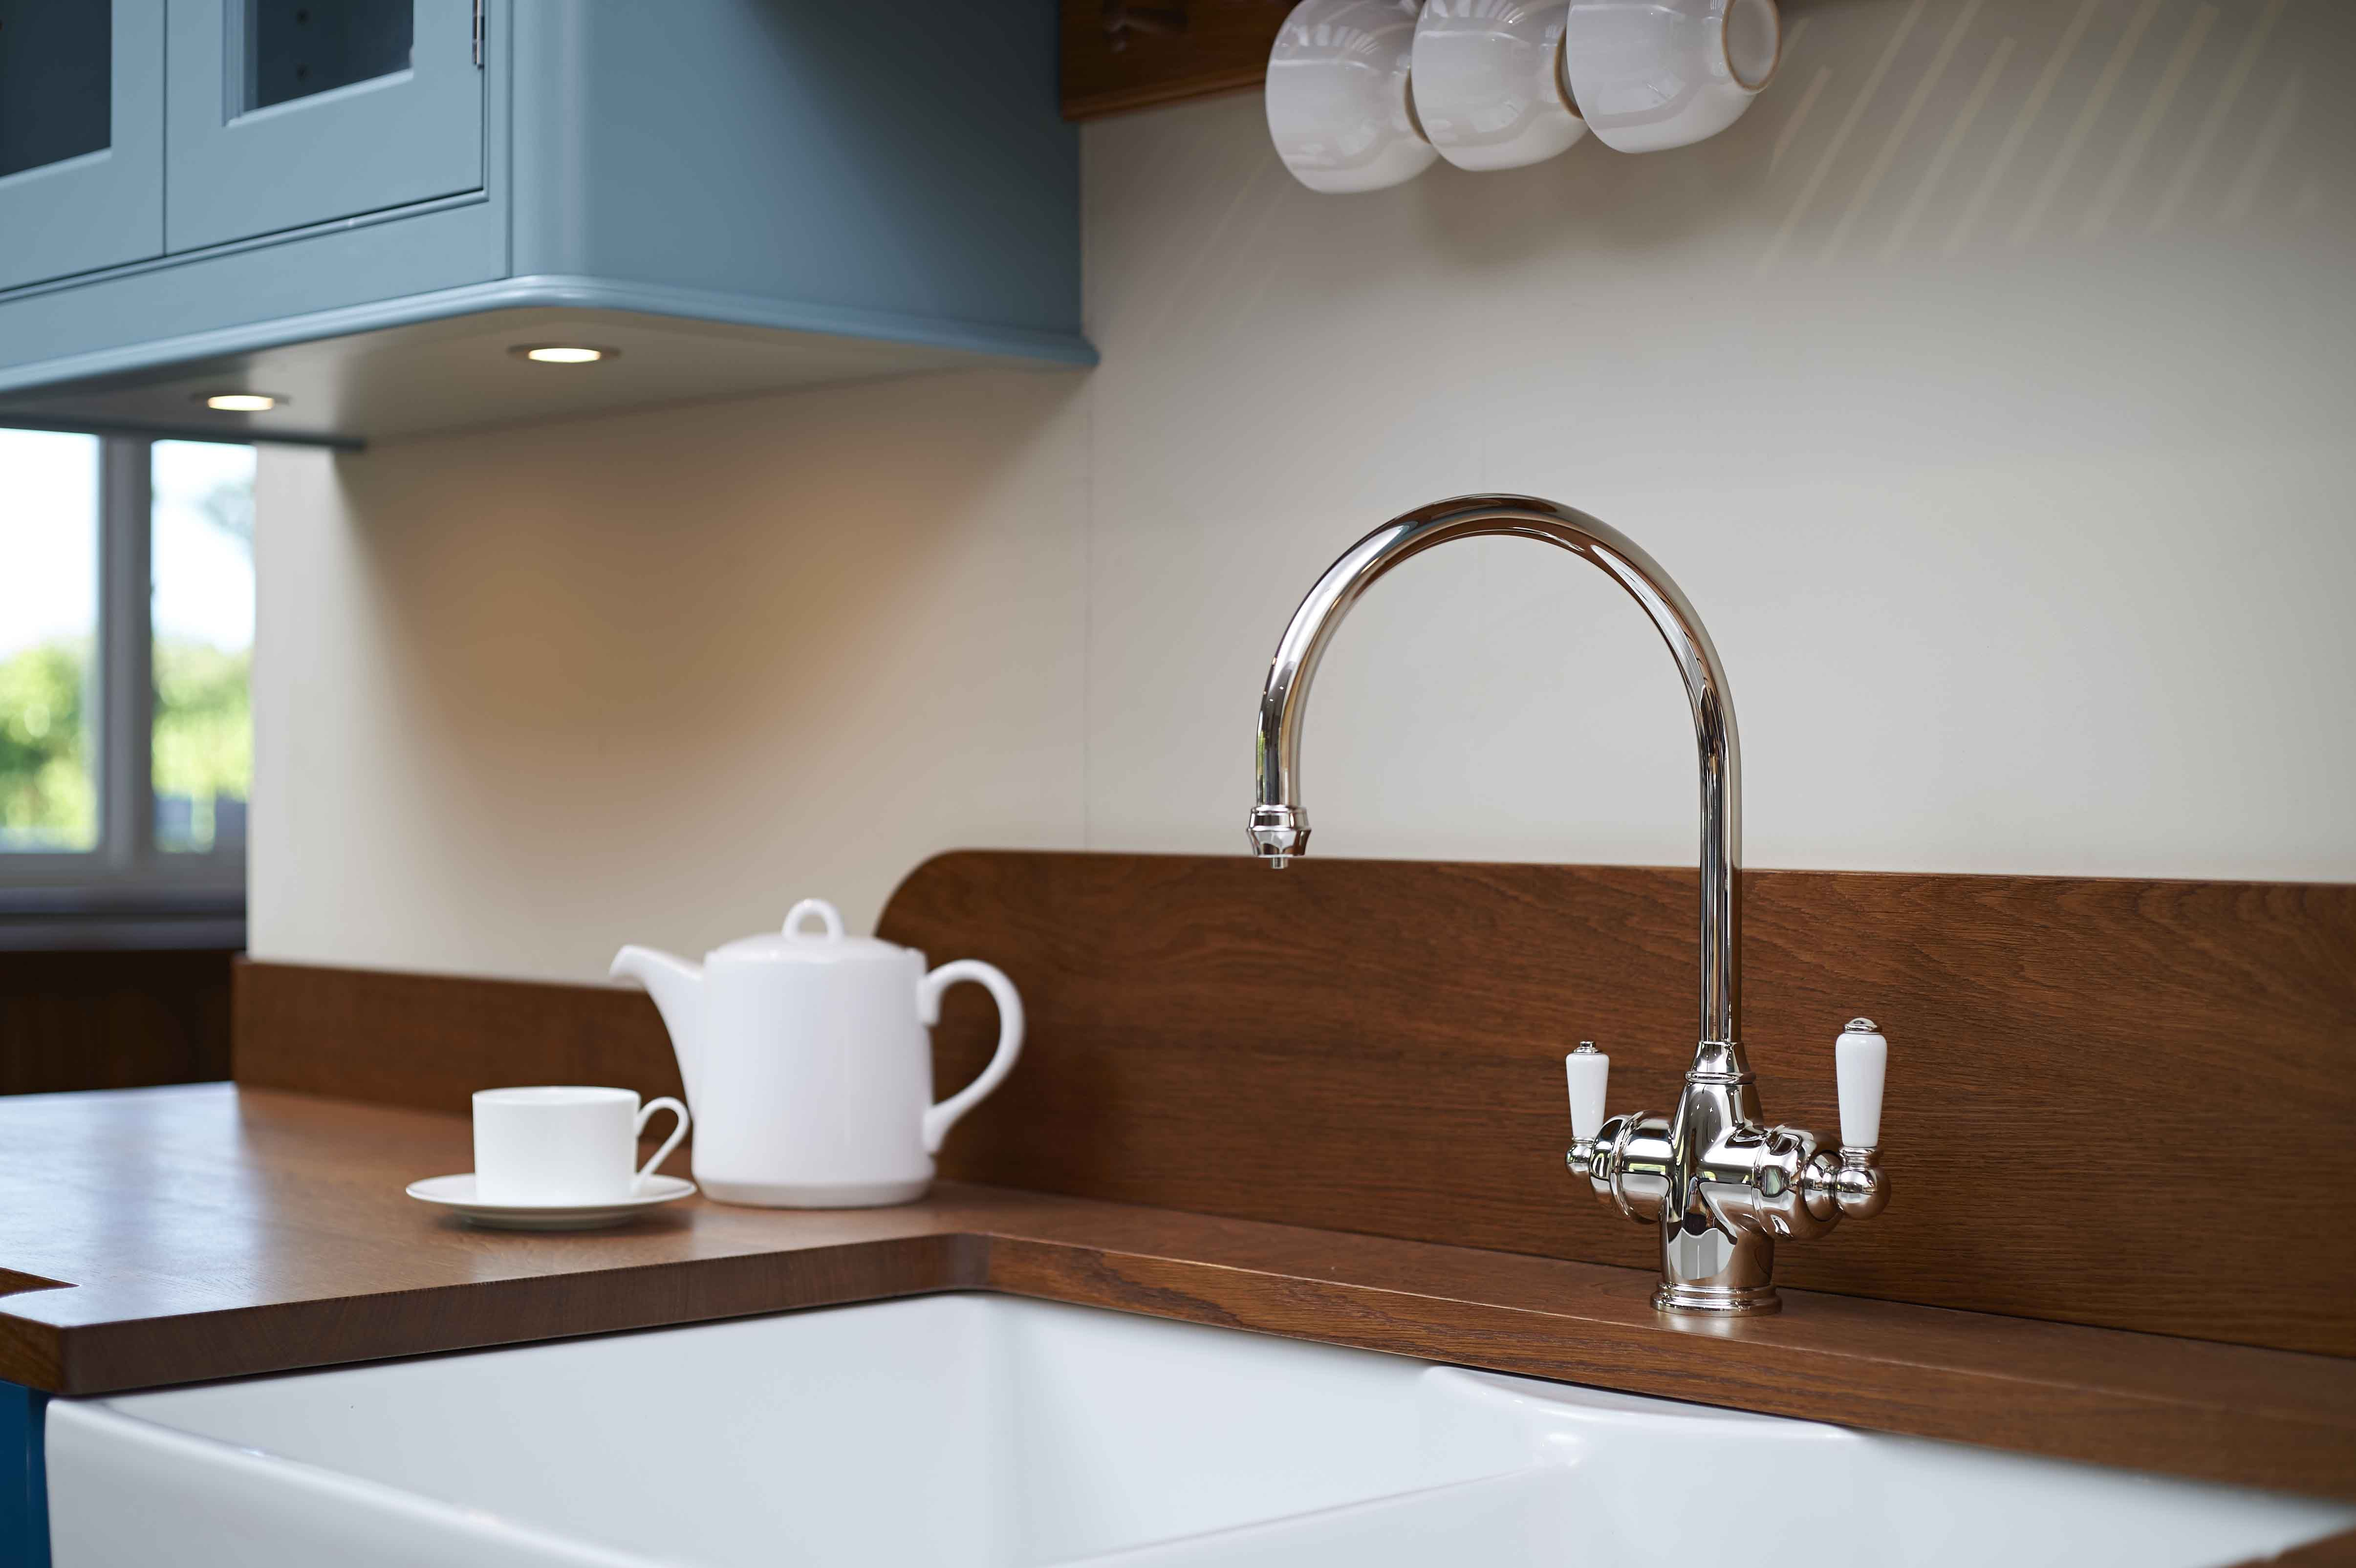 Polaris 3-in-1 Instant Hot Tap Sink Mixer - Perrin and Rowe | Ideas ...